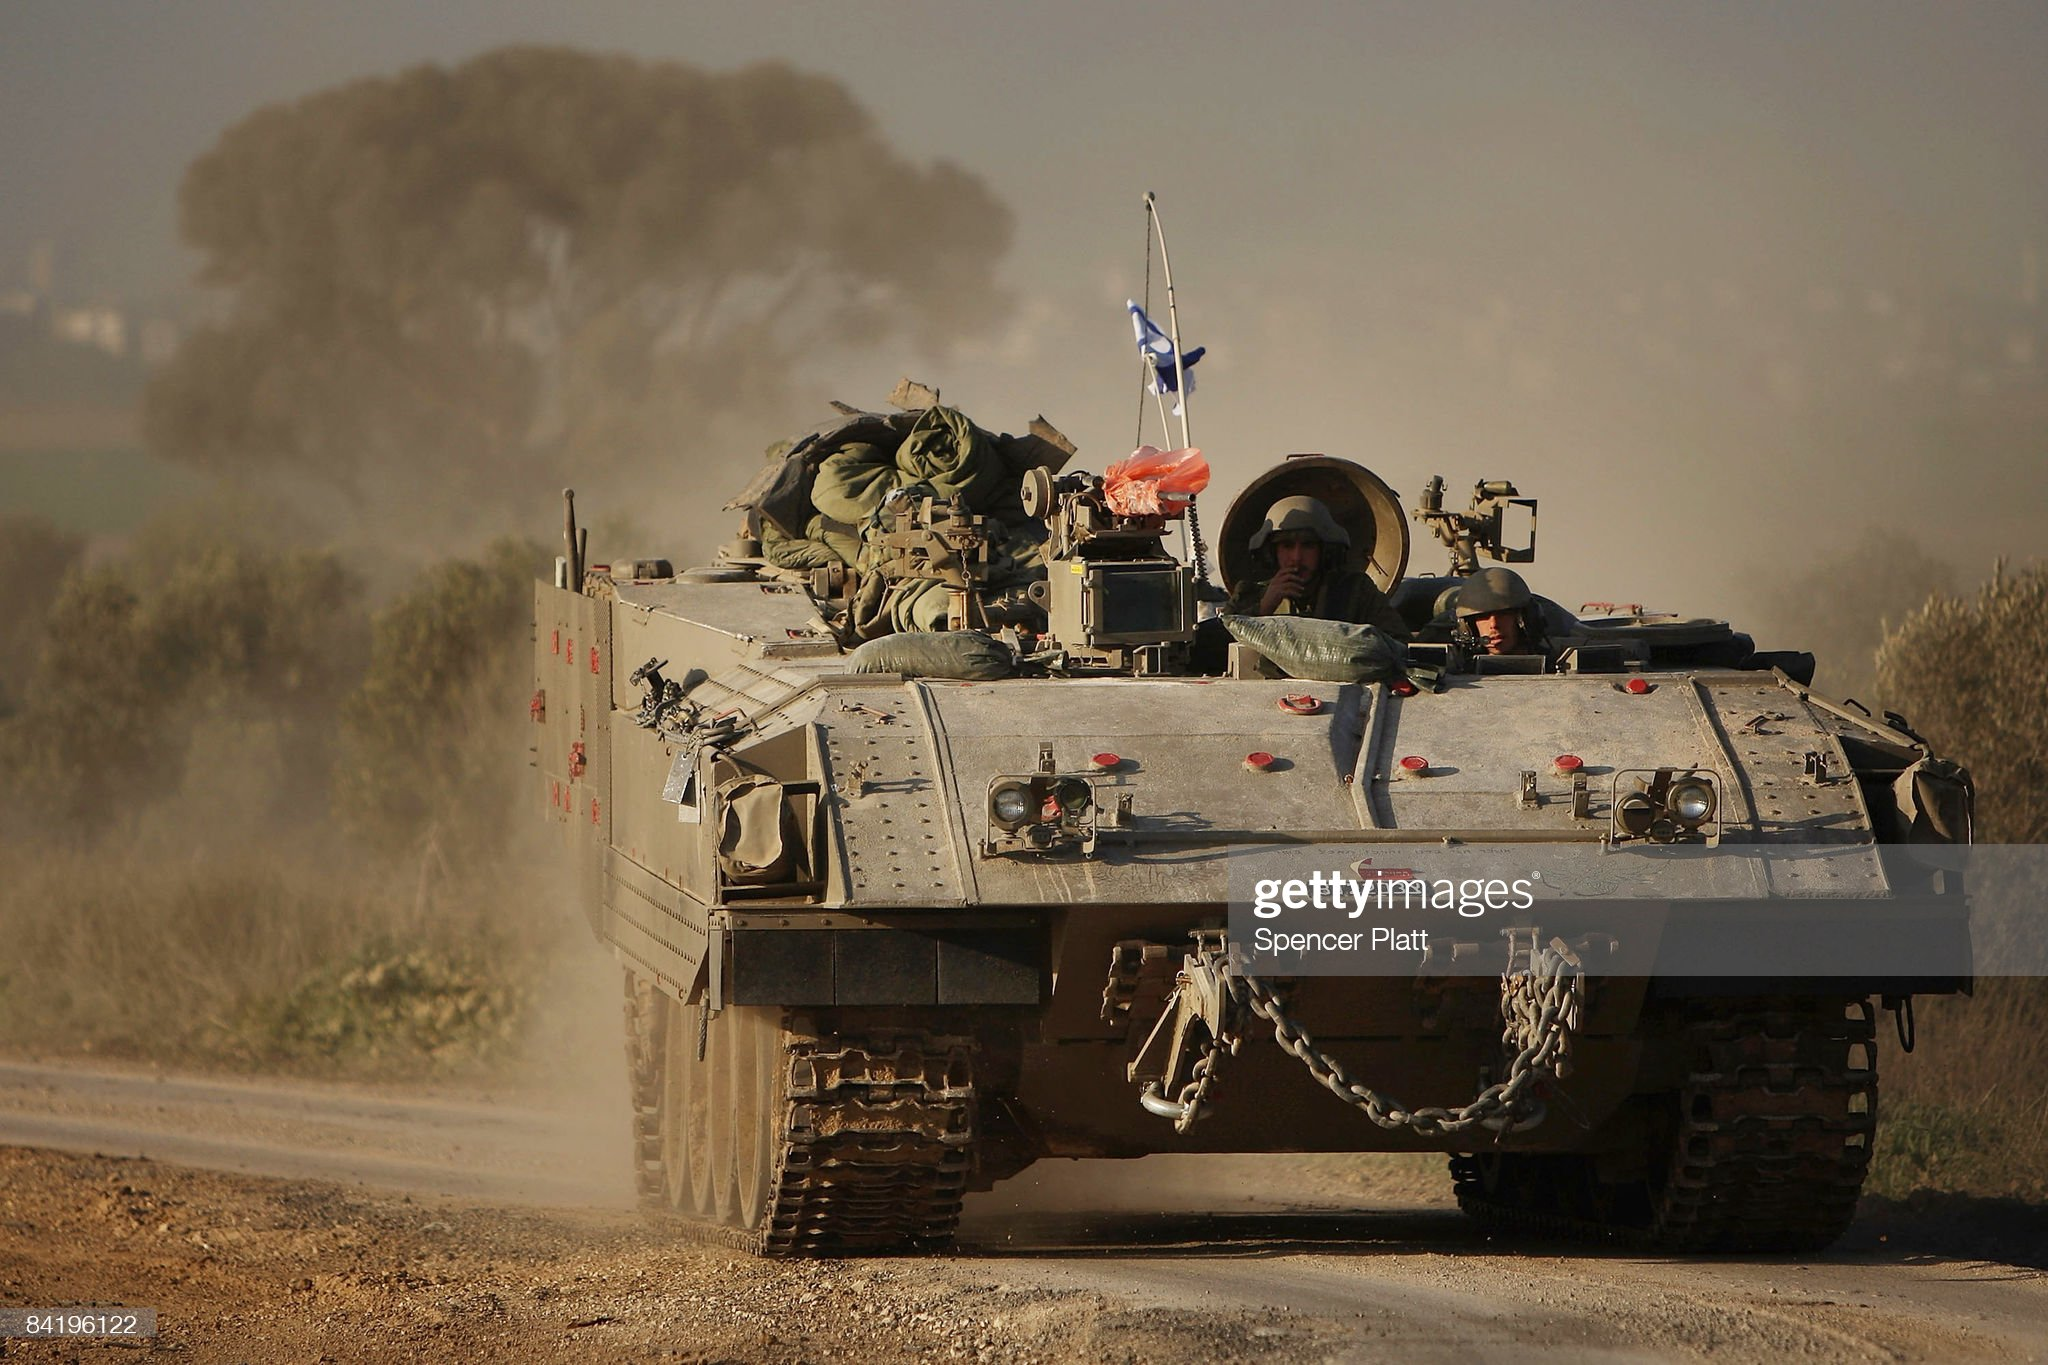 https://media.gettyimages.com/photos/israeli-soldiers-ride-in-their-armored-personnel-carrier-during-the-picture-id84196122?s=2048x2048